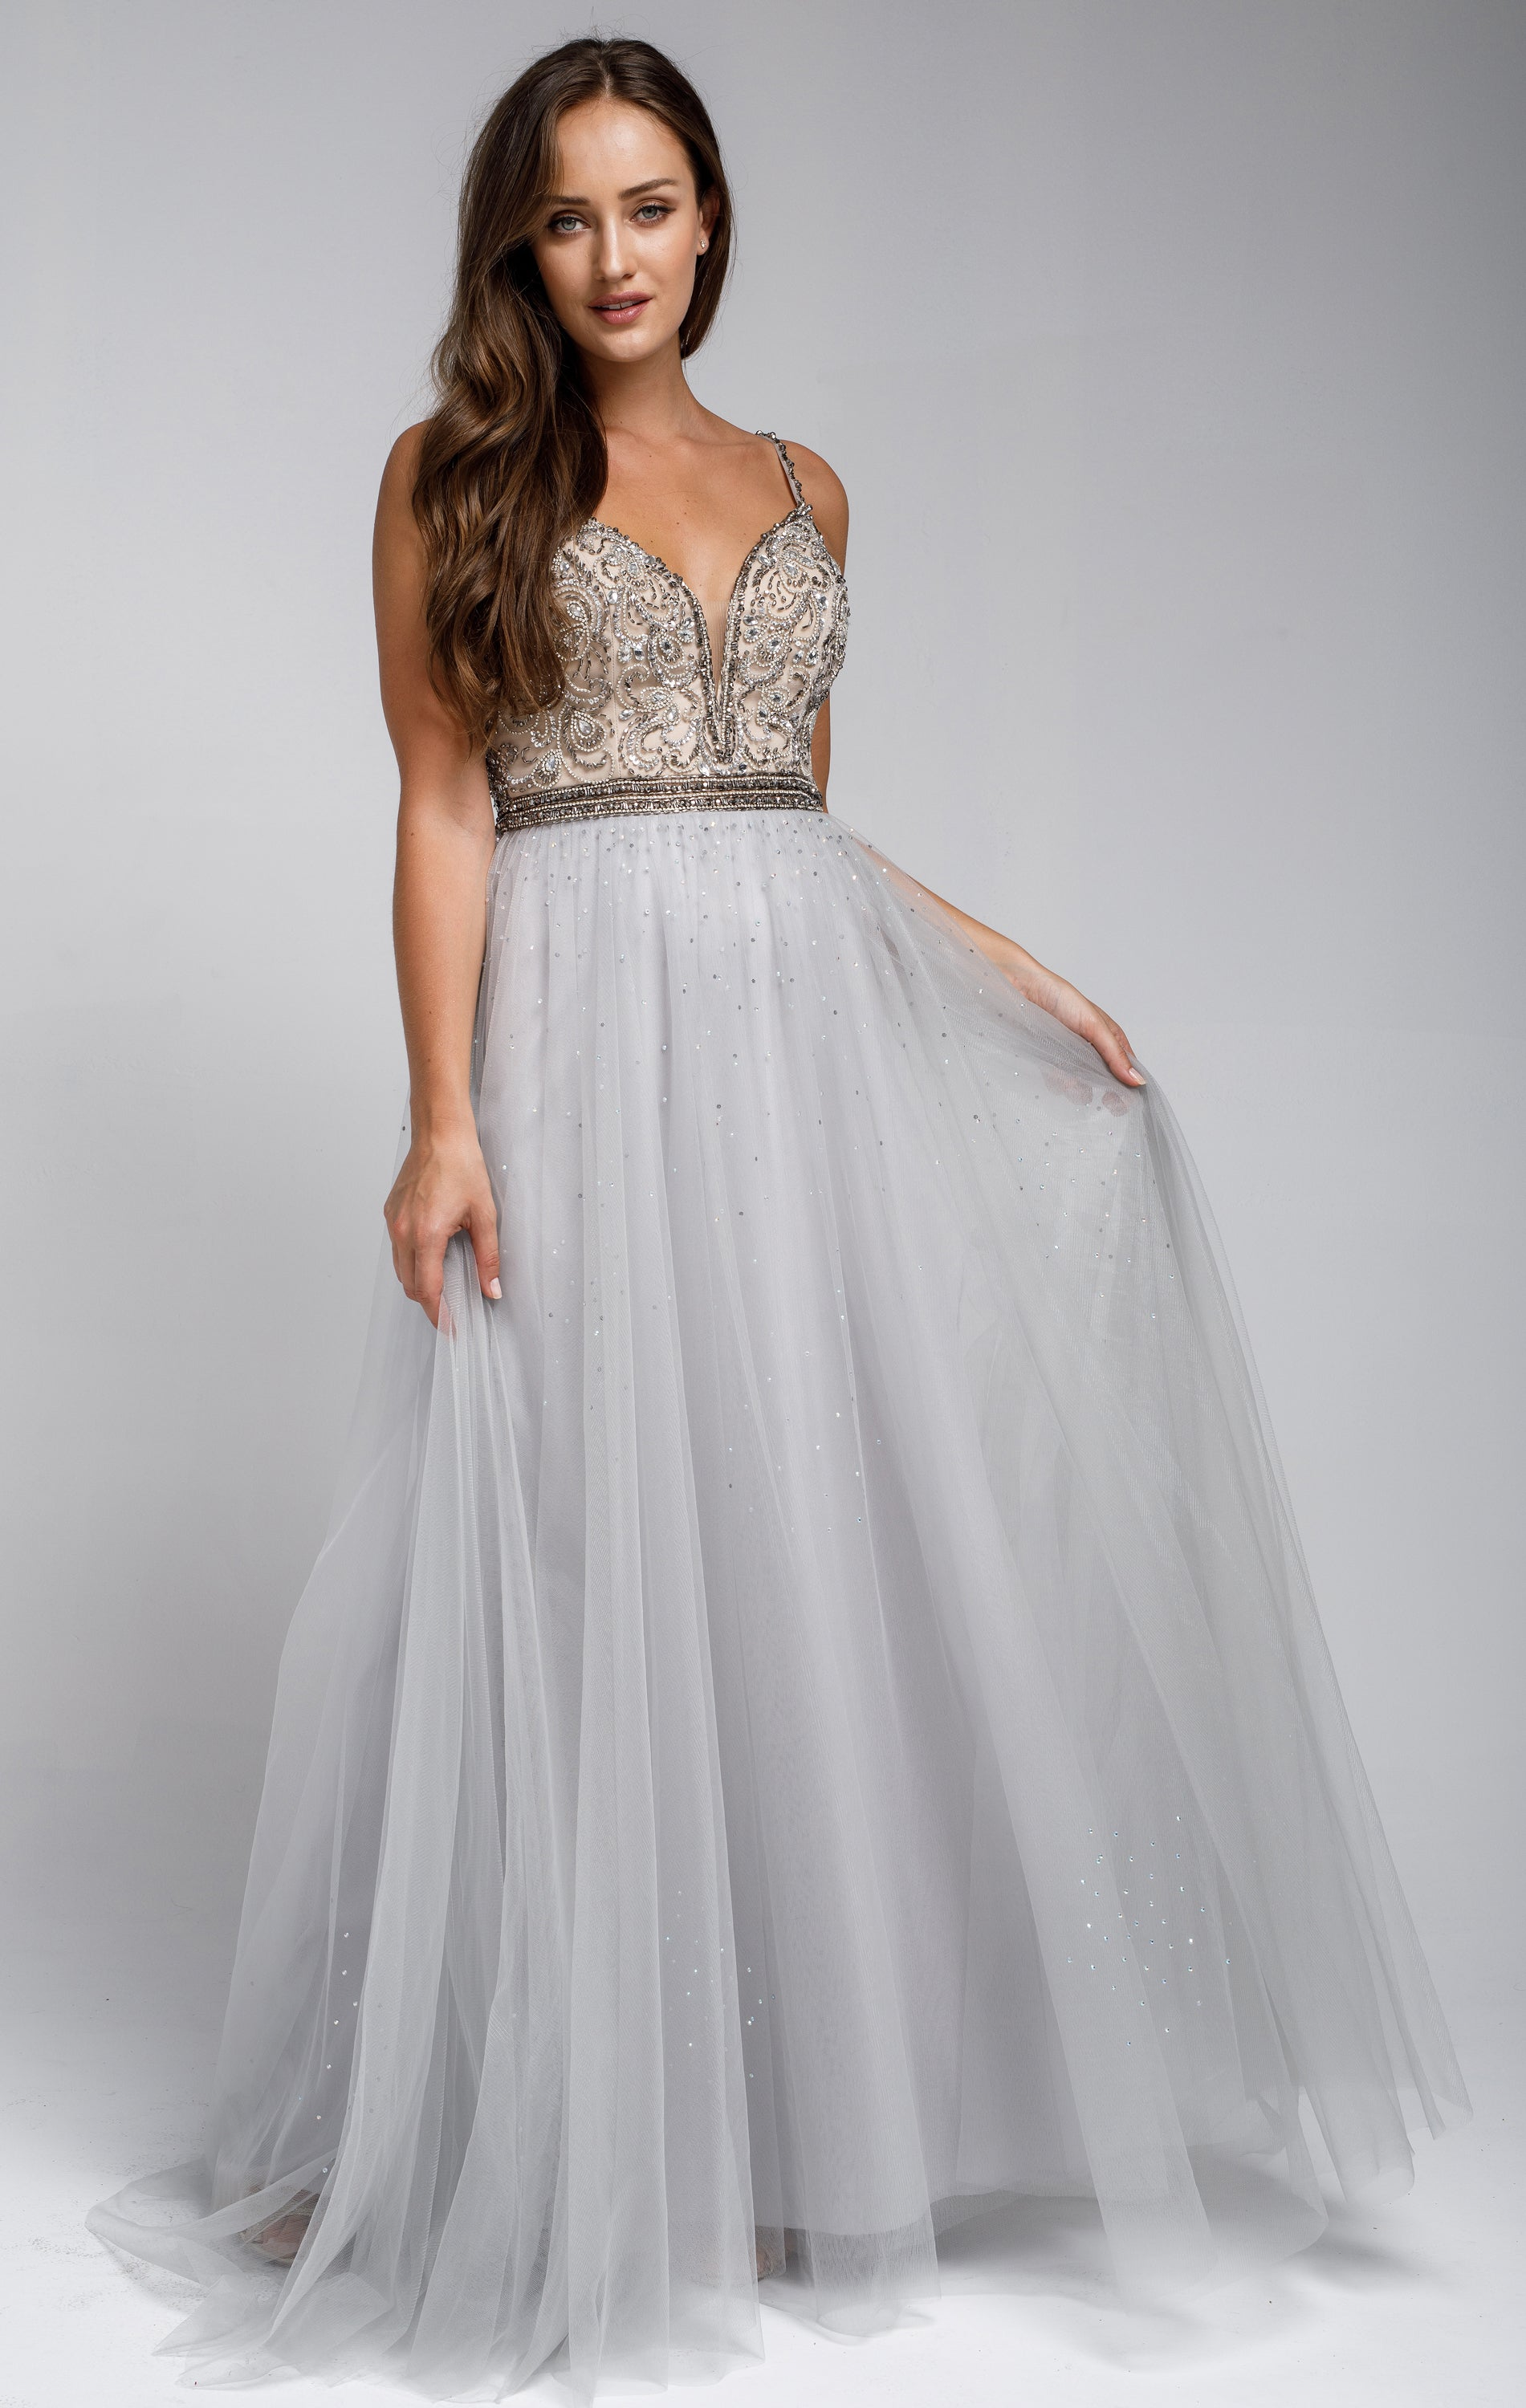 Image of Beaded Spaghetti Prom Gown With Tulle Skirt in Silver